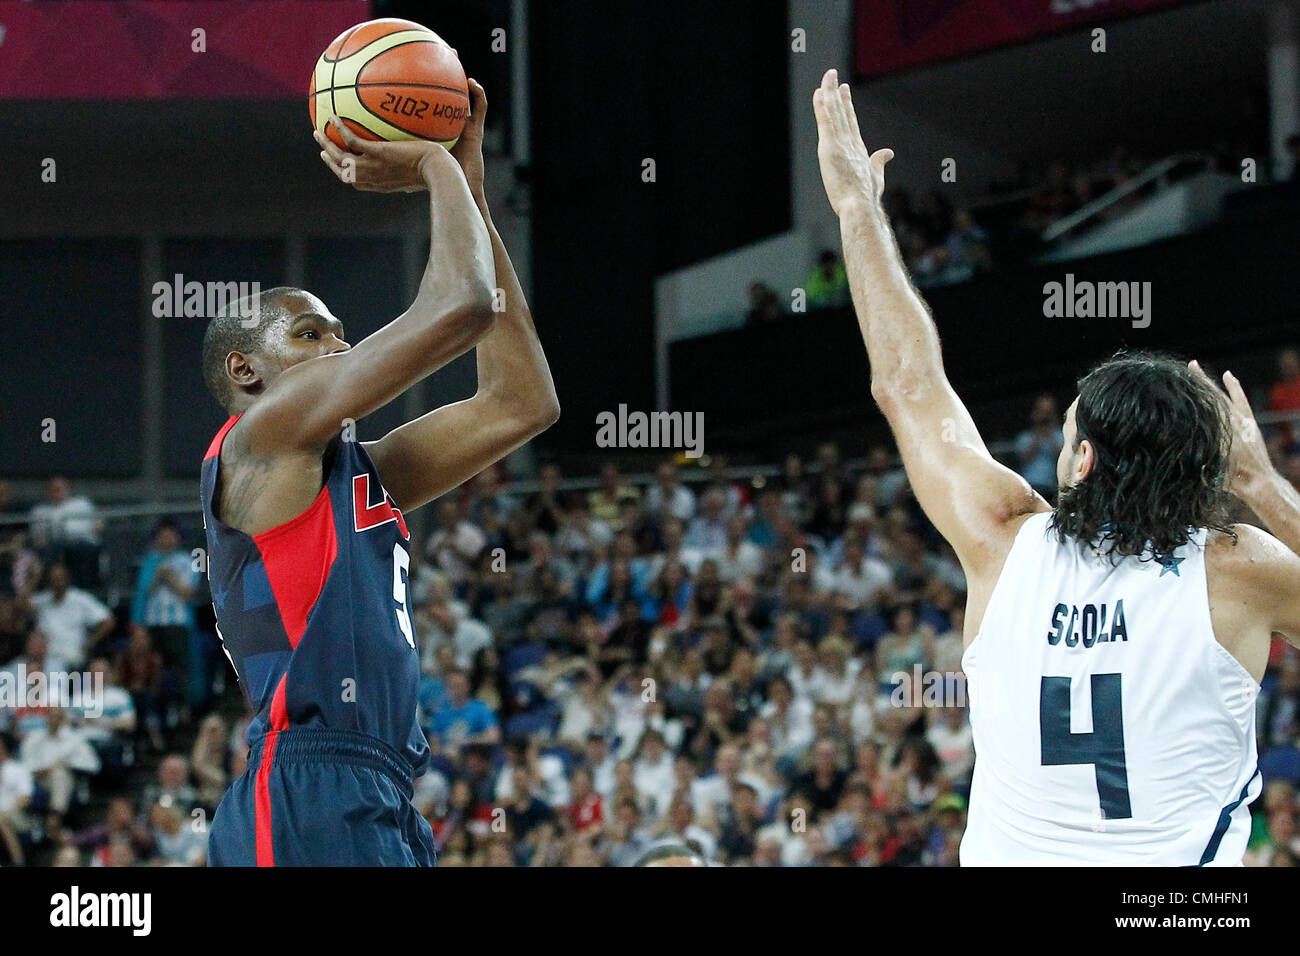 10.08.2012. London, England. USA Kevin Durant takes a jumpshot over Argentina Luis Scola during 109-80 Team USA - Stock Image